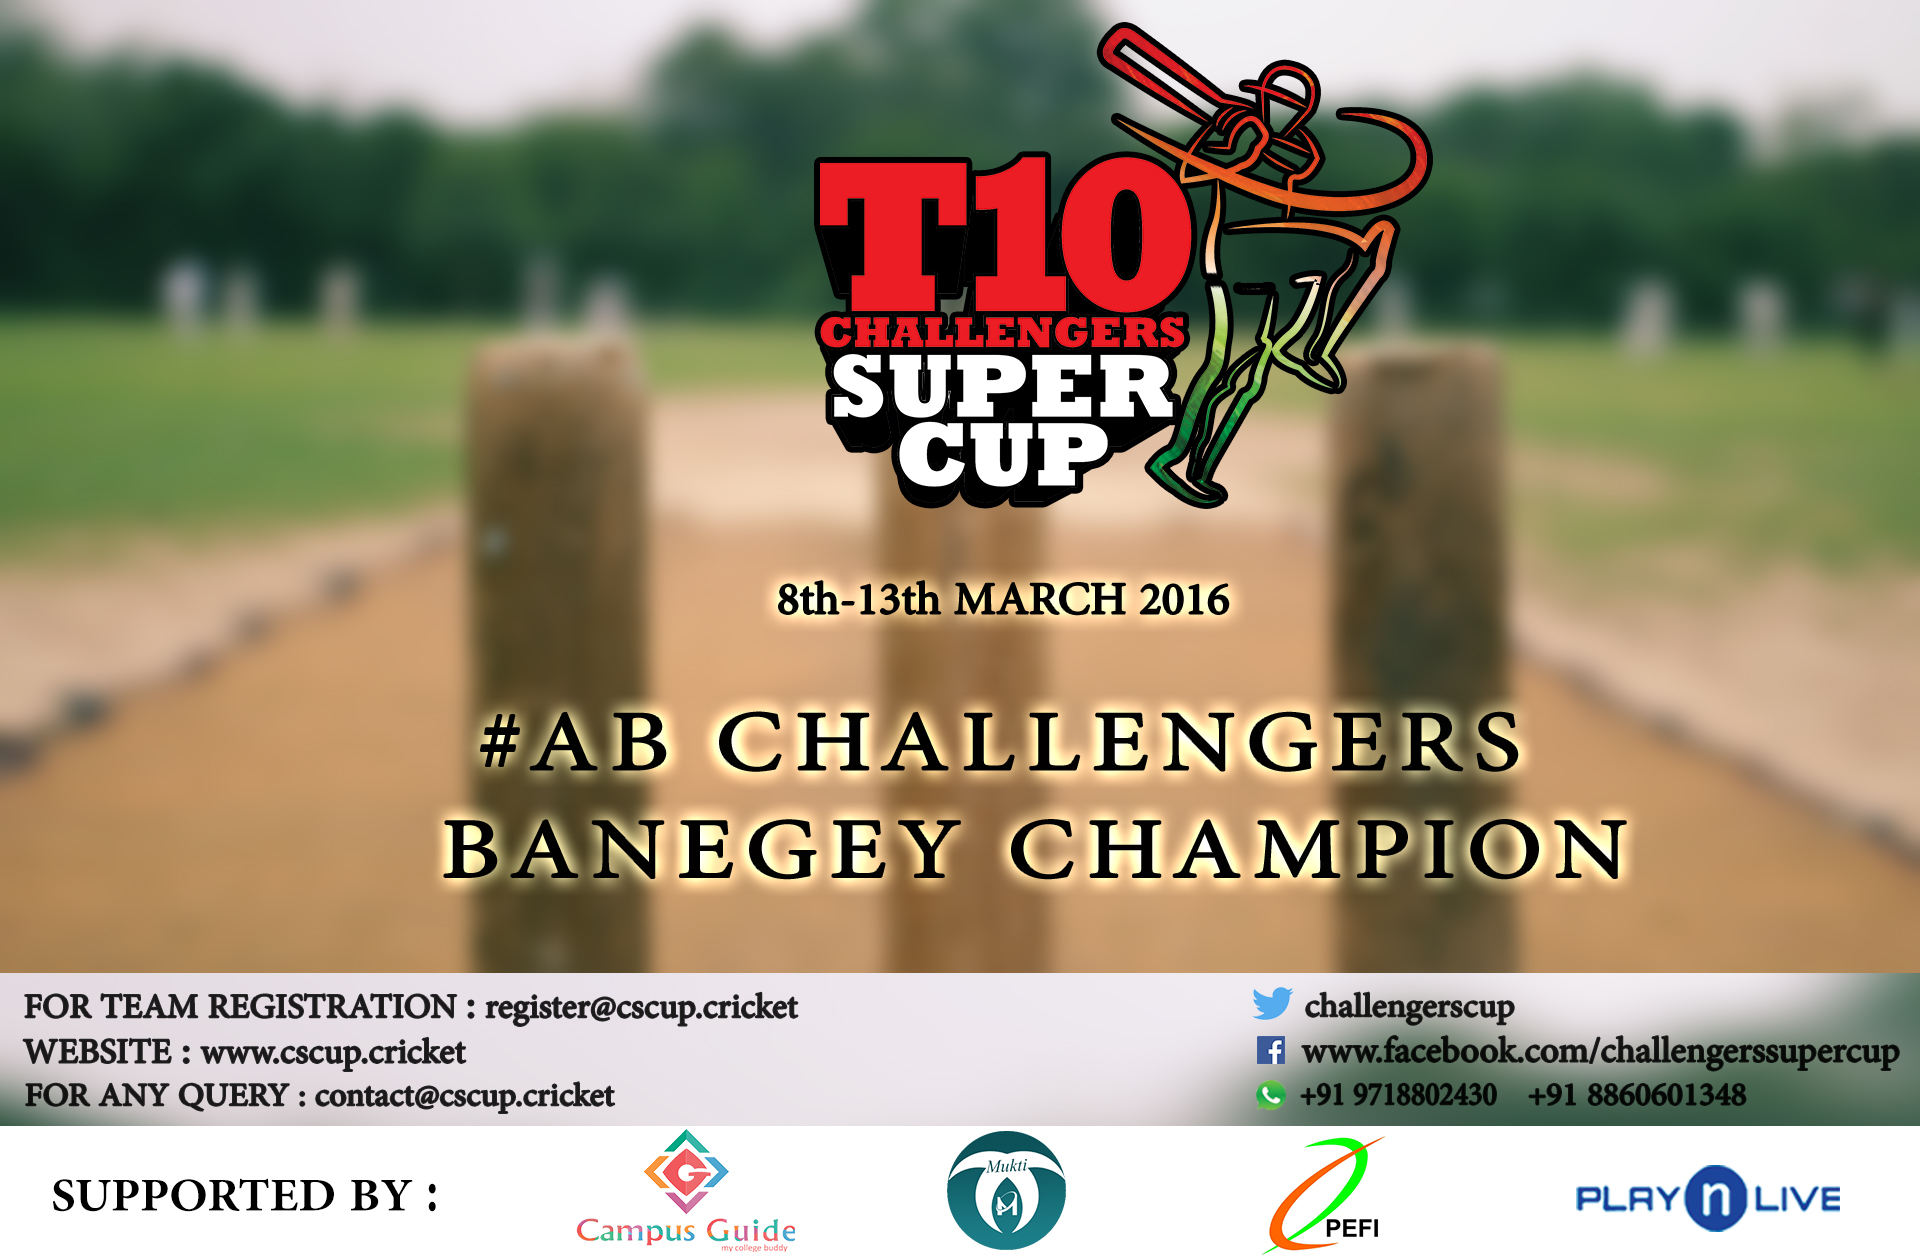 T10 Challengers Super Cup